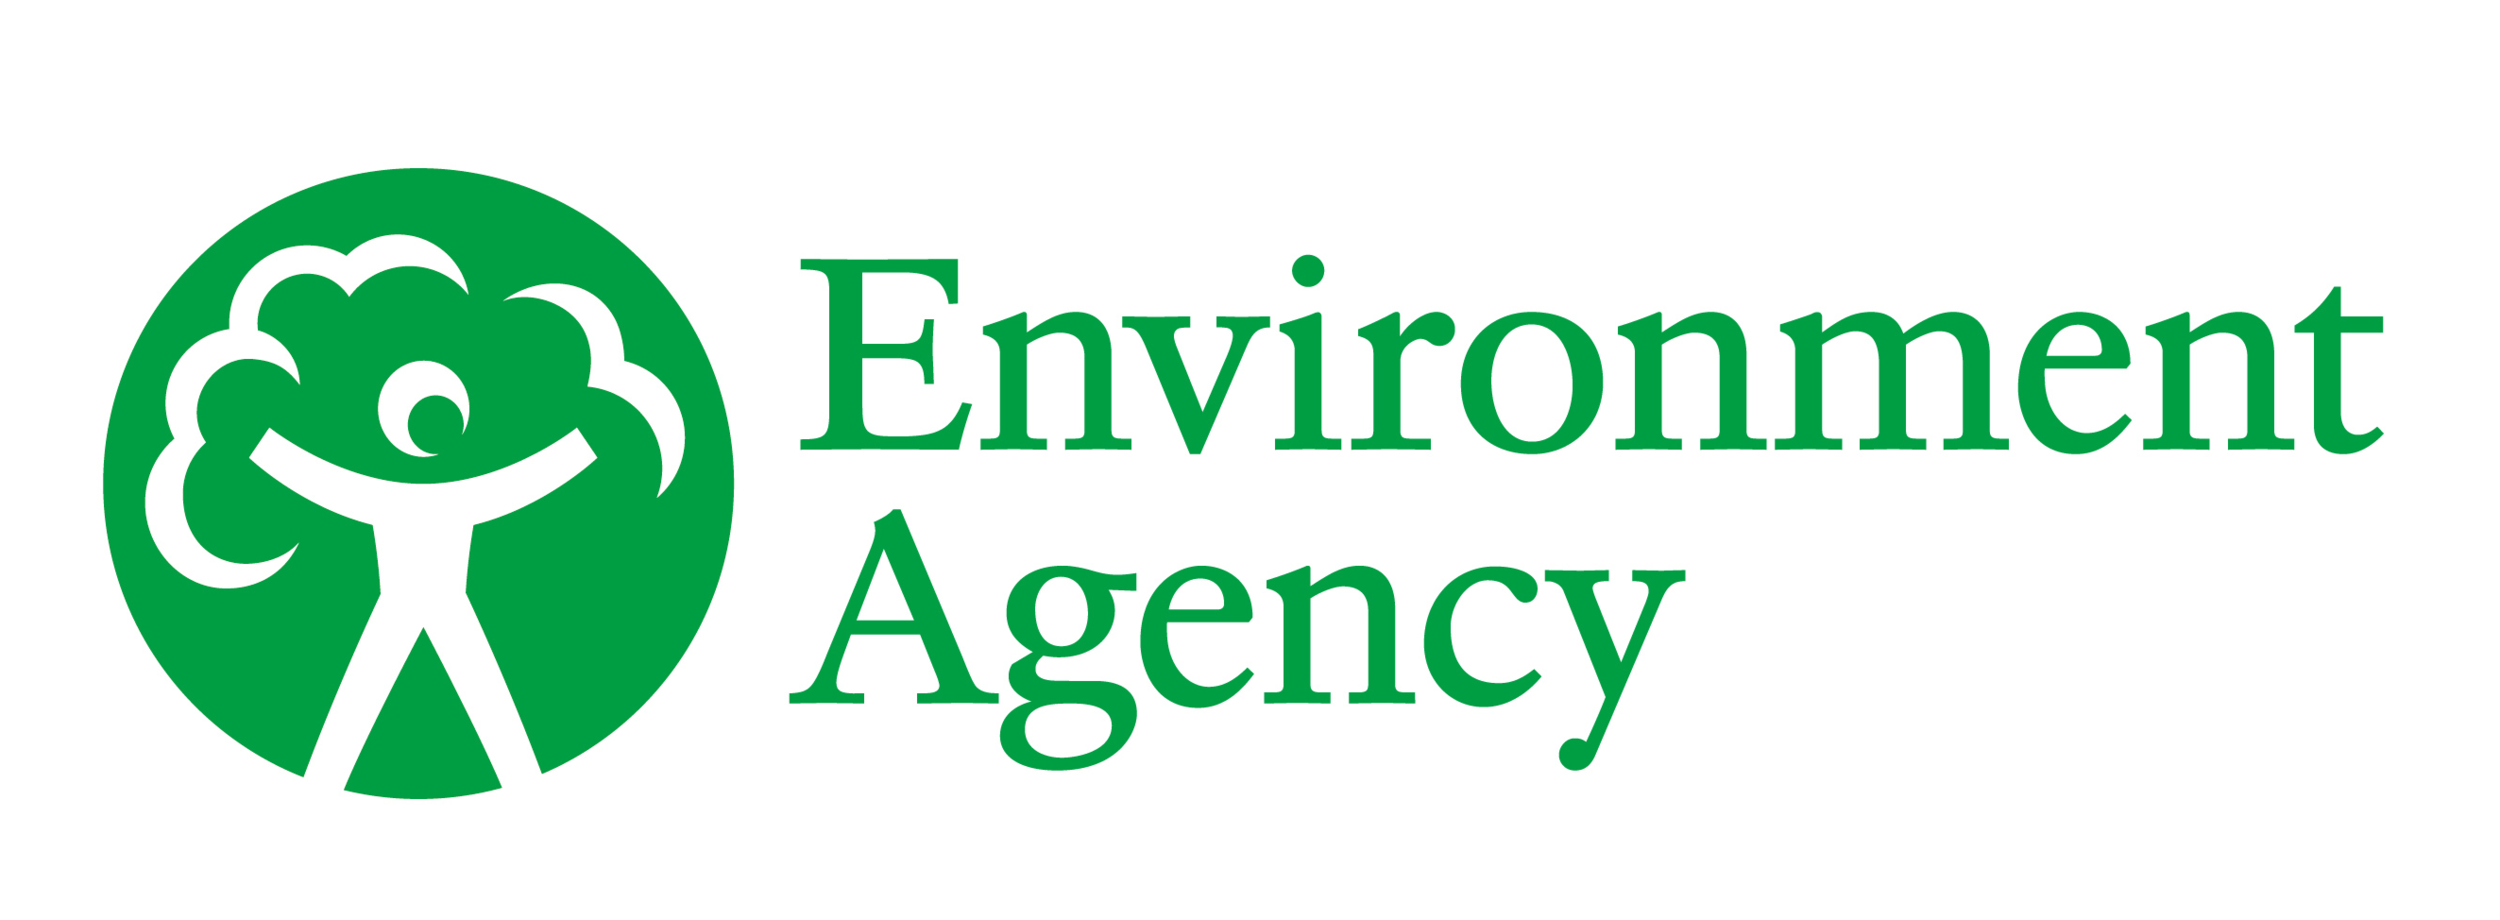 environment agency 2.png